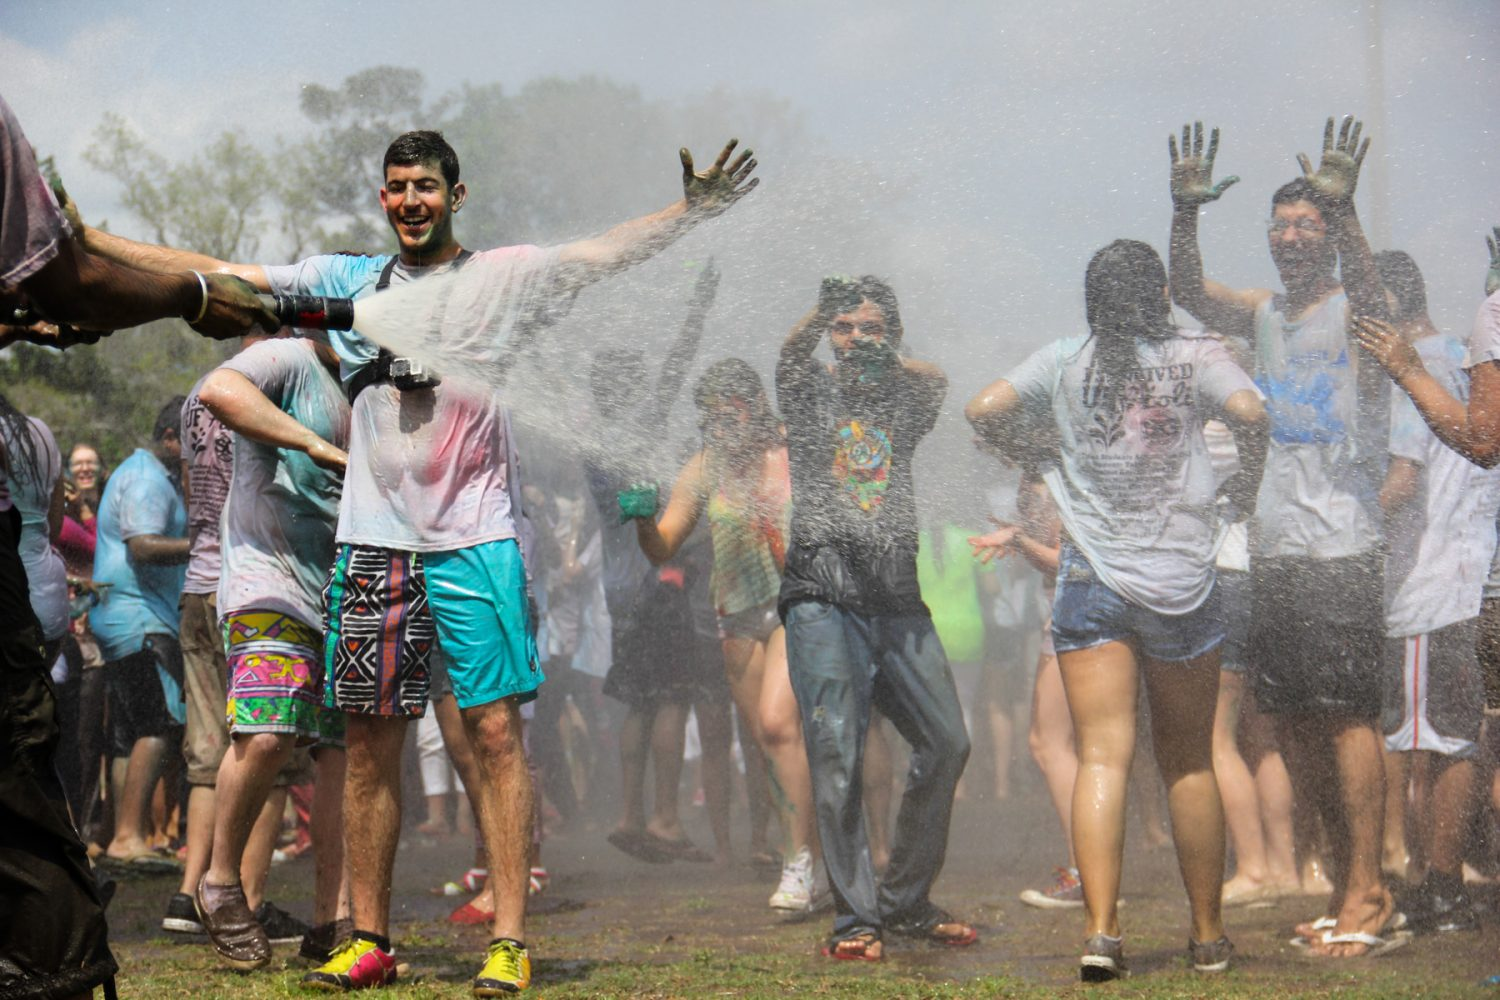 After the festival, those in attendance were hosed down at Flavet field on the University of Florida campus.